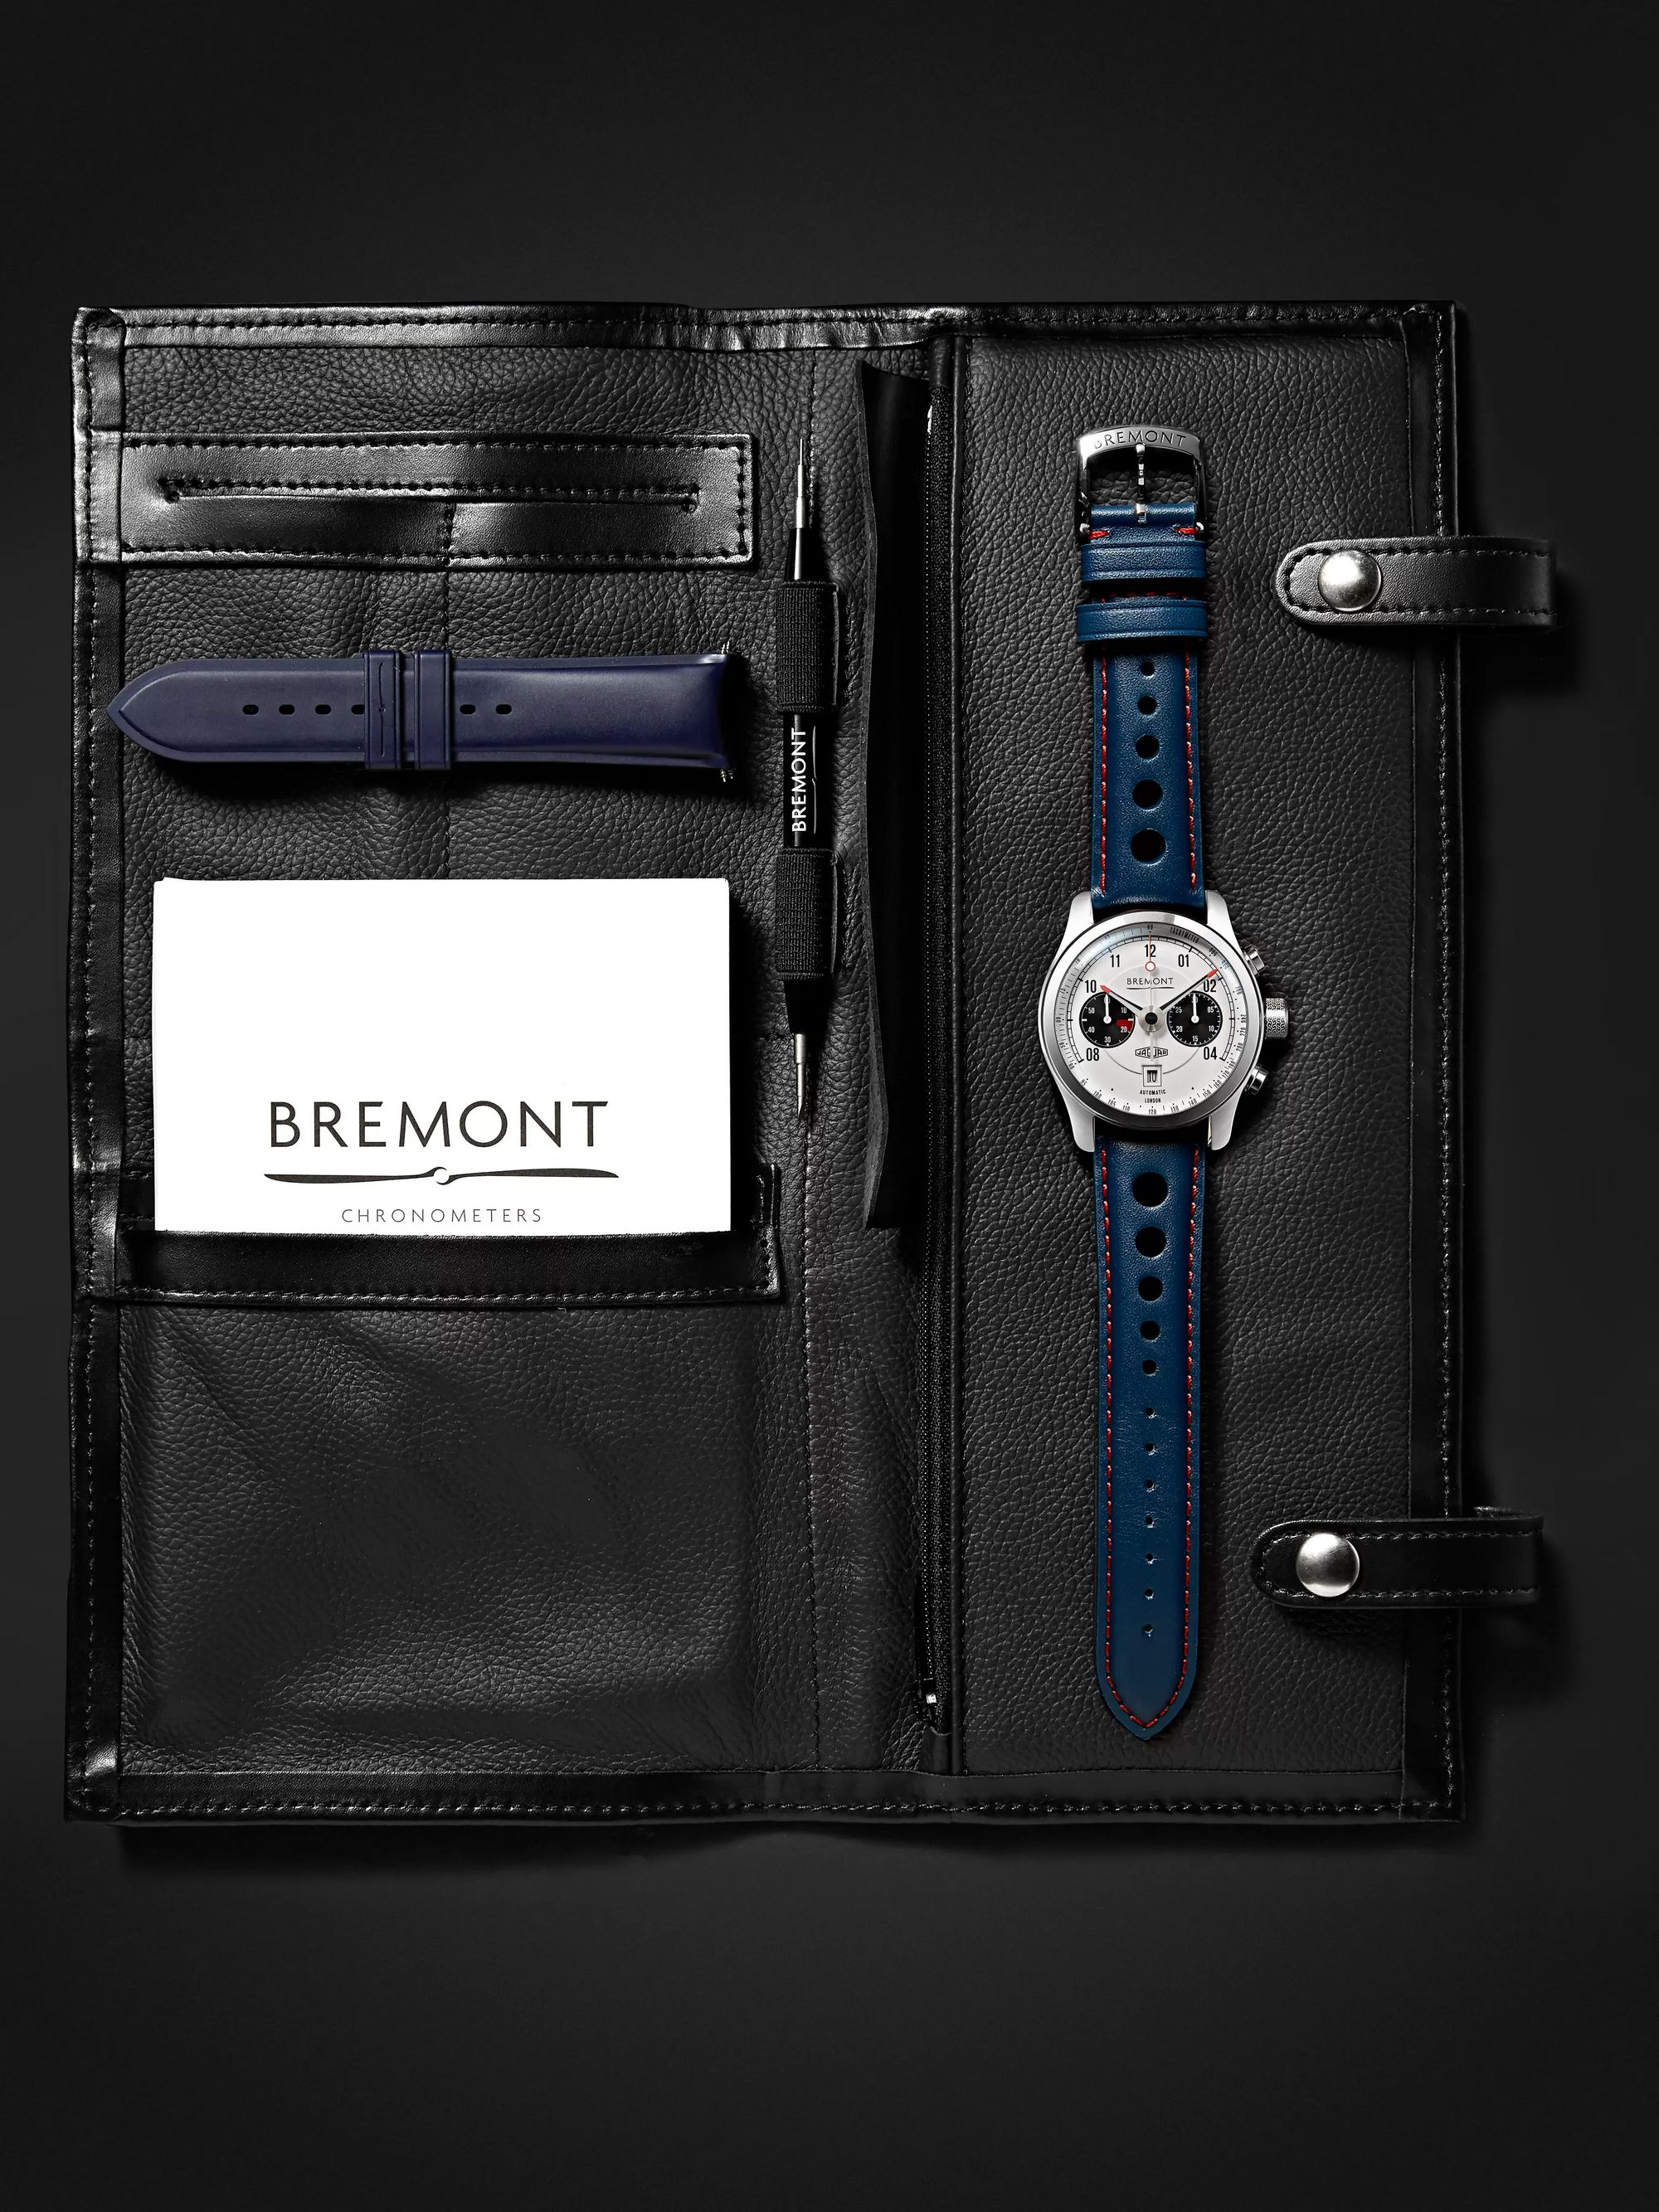 Bremont MKII Jaguar 43mm Stainless Steel and Leather Watch, Ref. No. MK11/WH